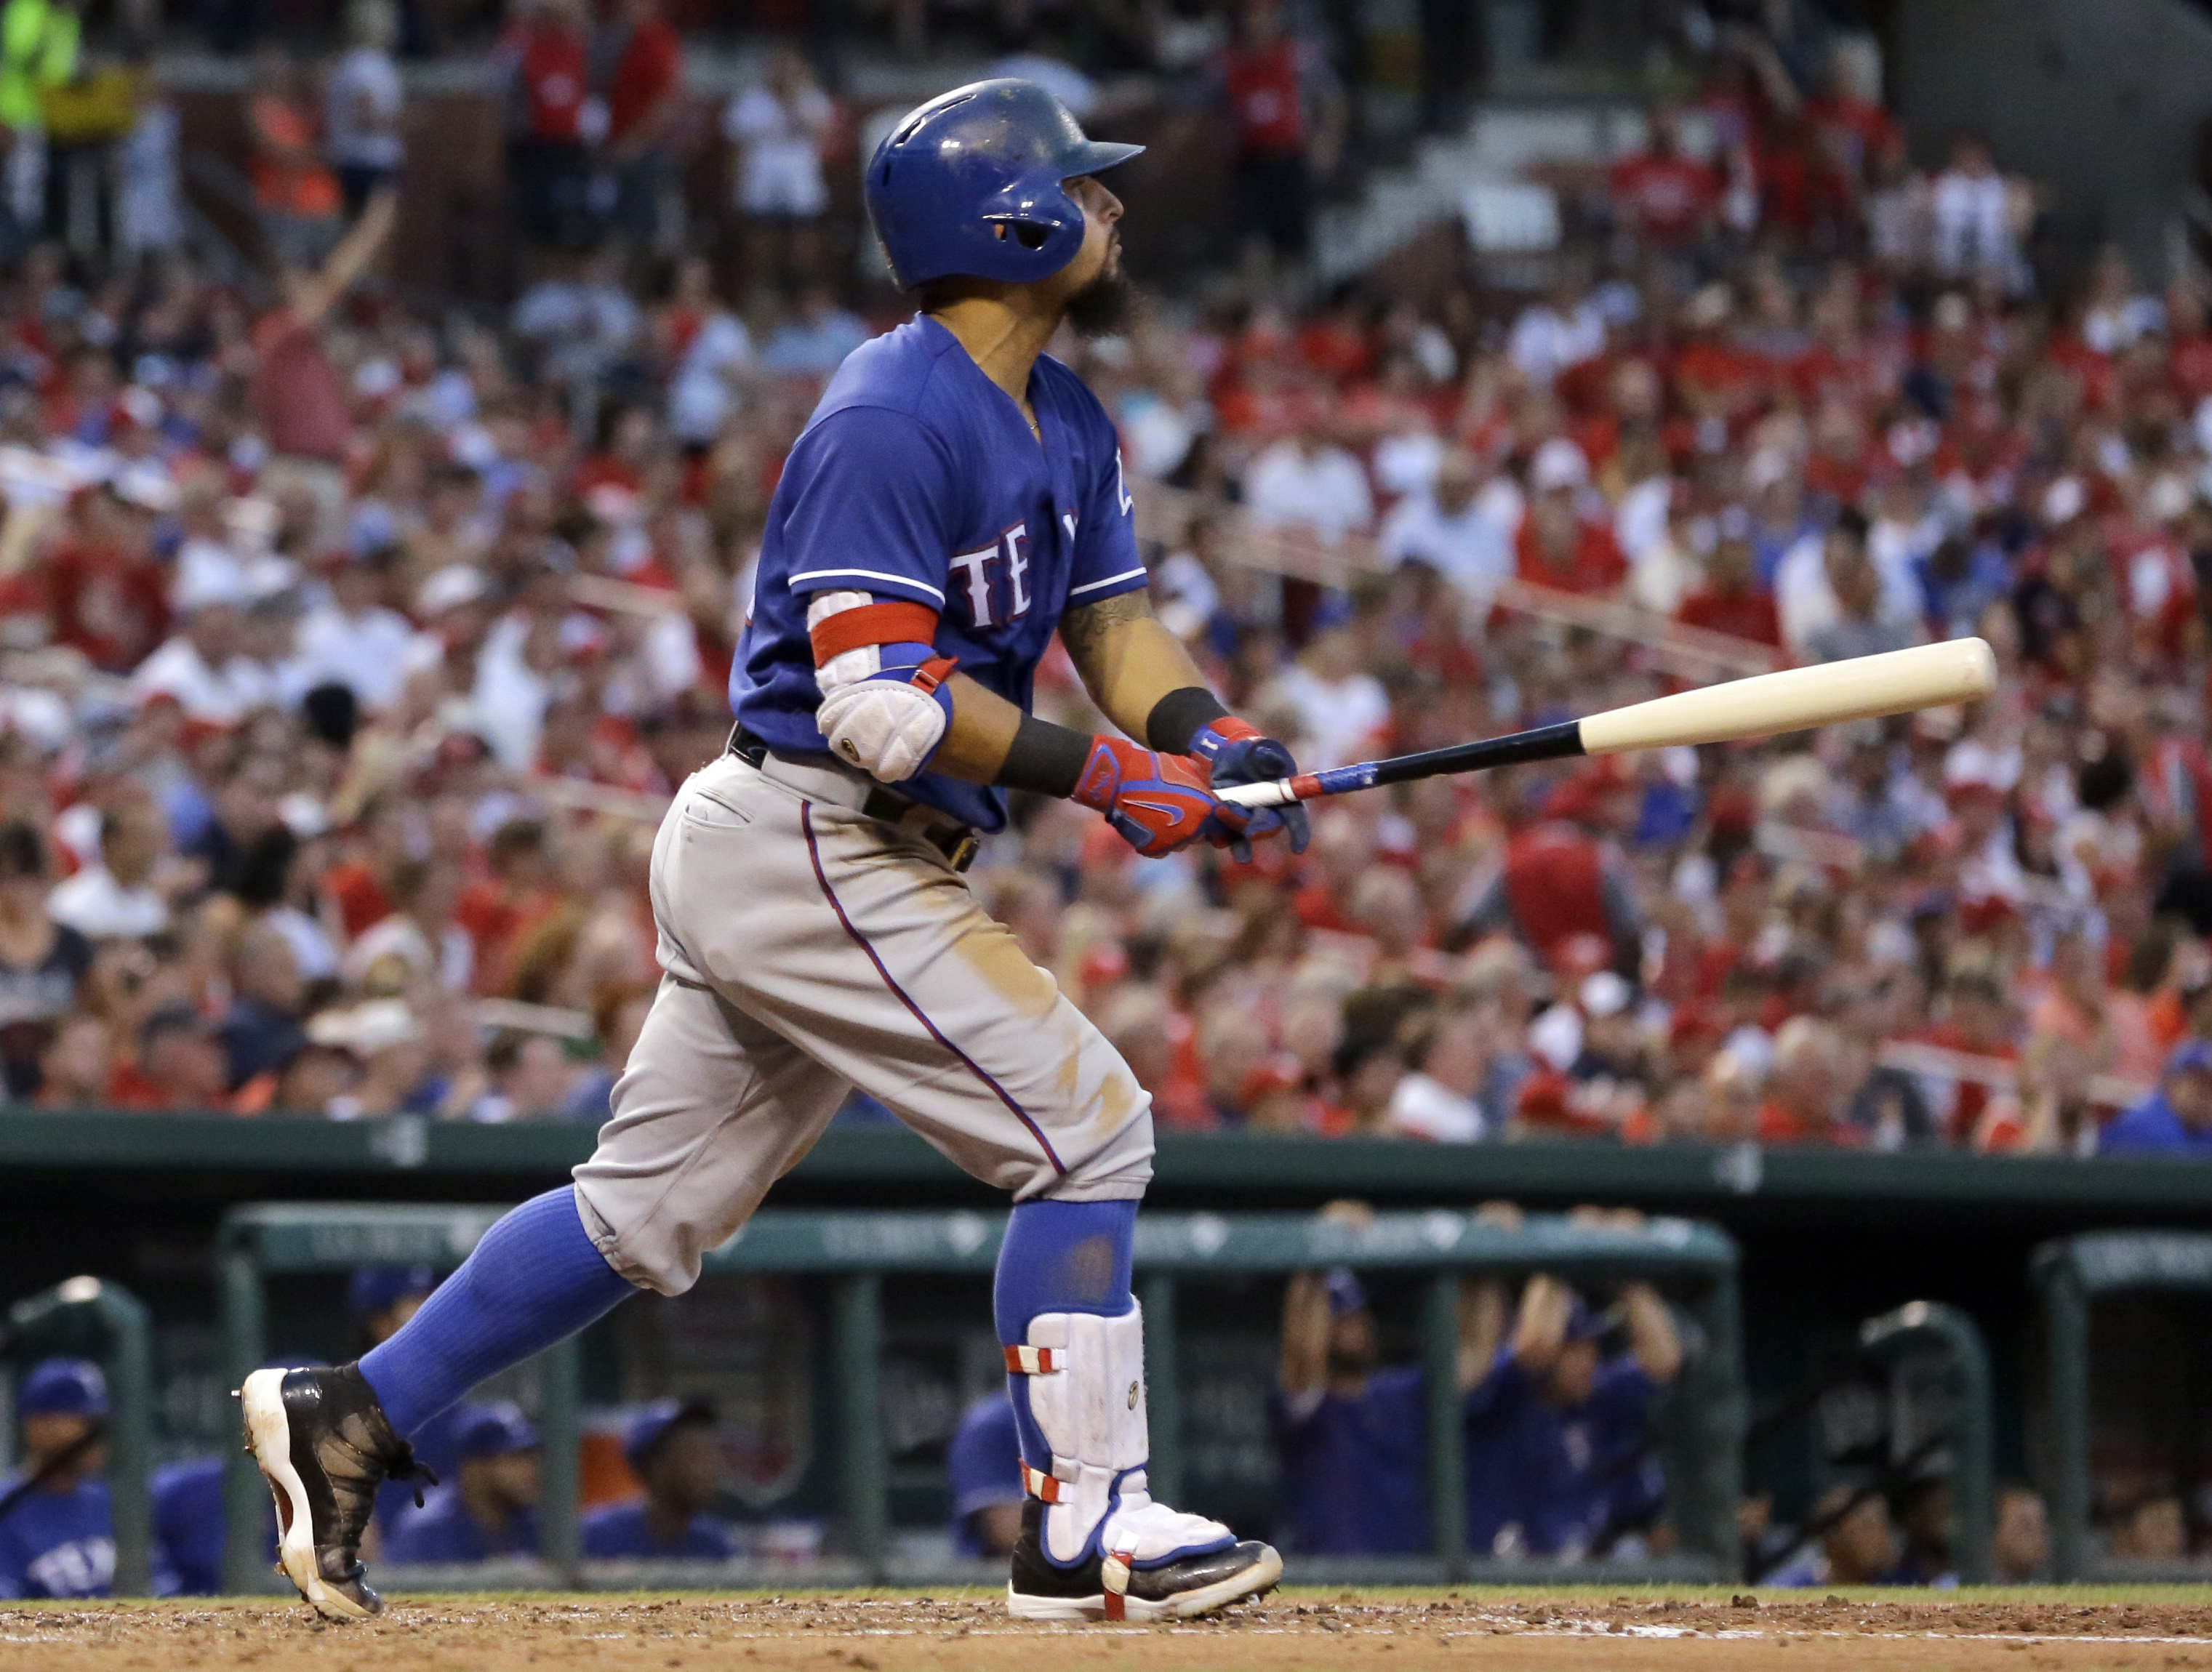 Texas Rangers' Rougned Odor watches his solo home run during the fifth inning of a baseball game against the St. Louis Cardinals Friday, June 17, 2016, in St. Louis. (AP Photo/Jeff Roberson)